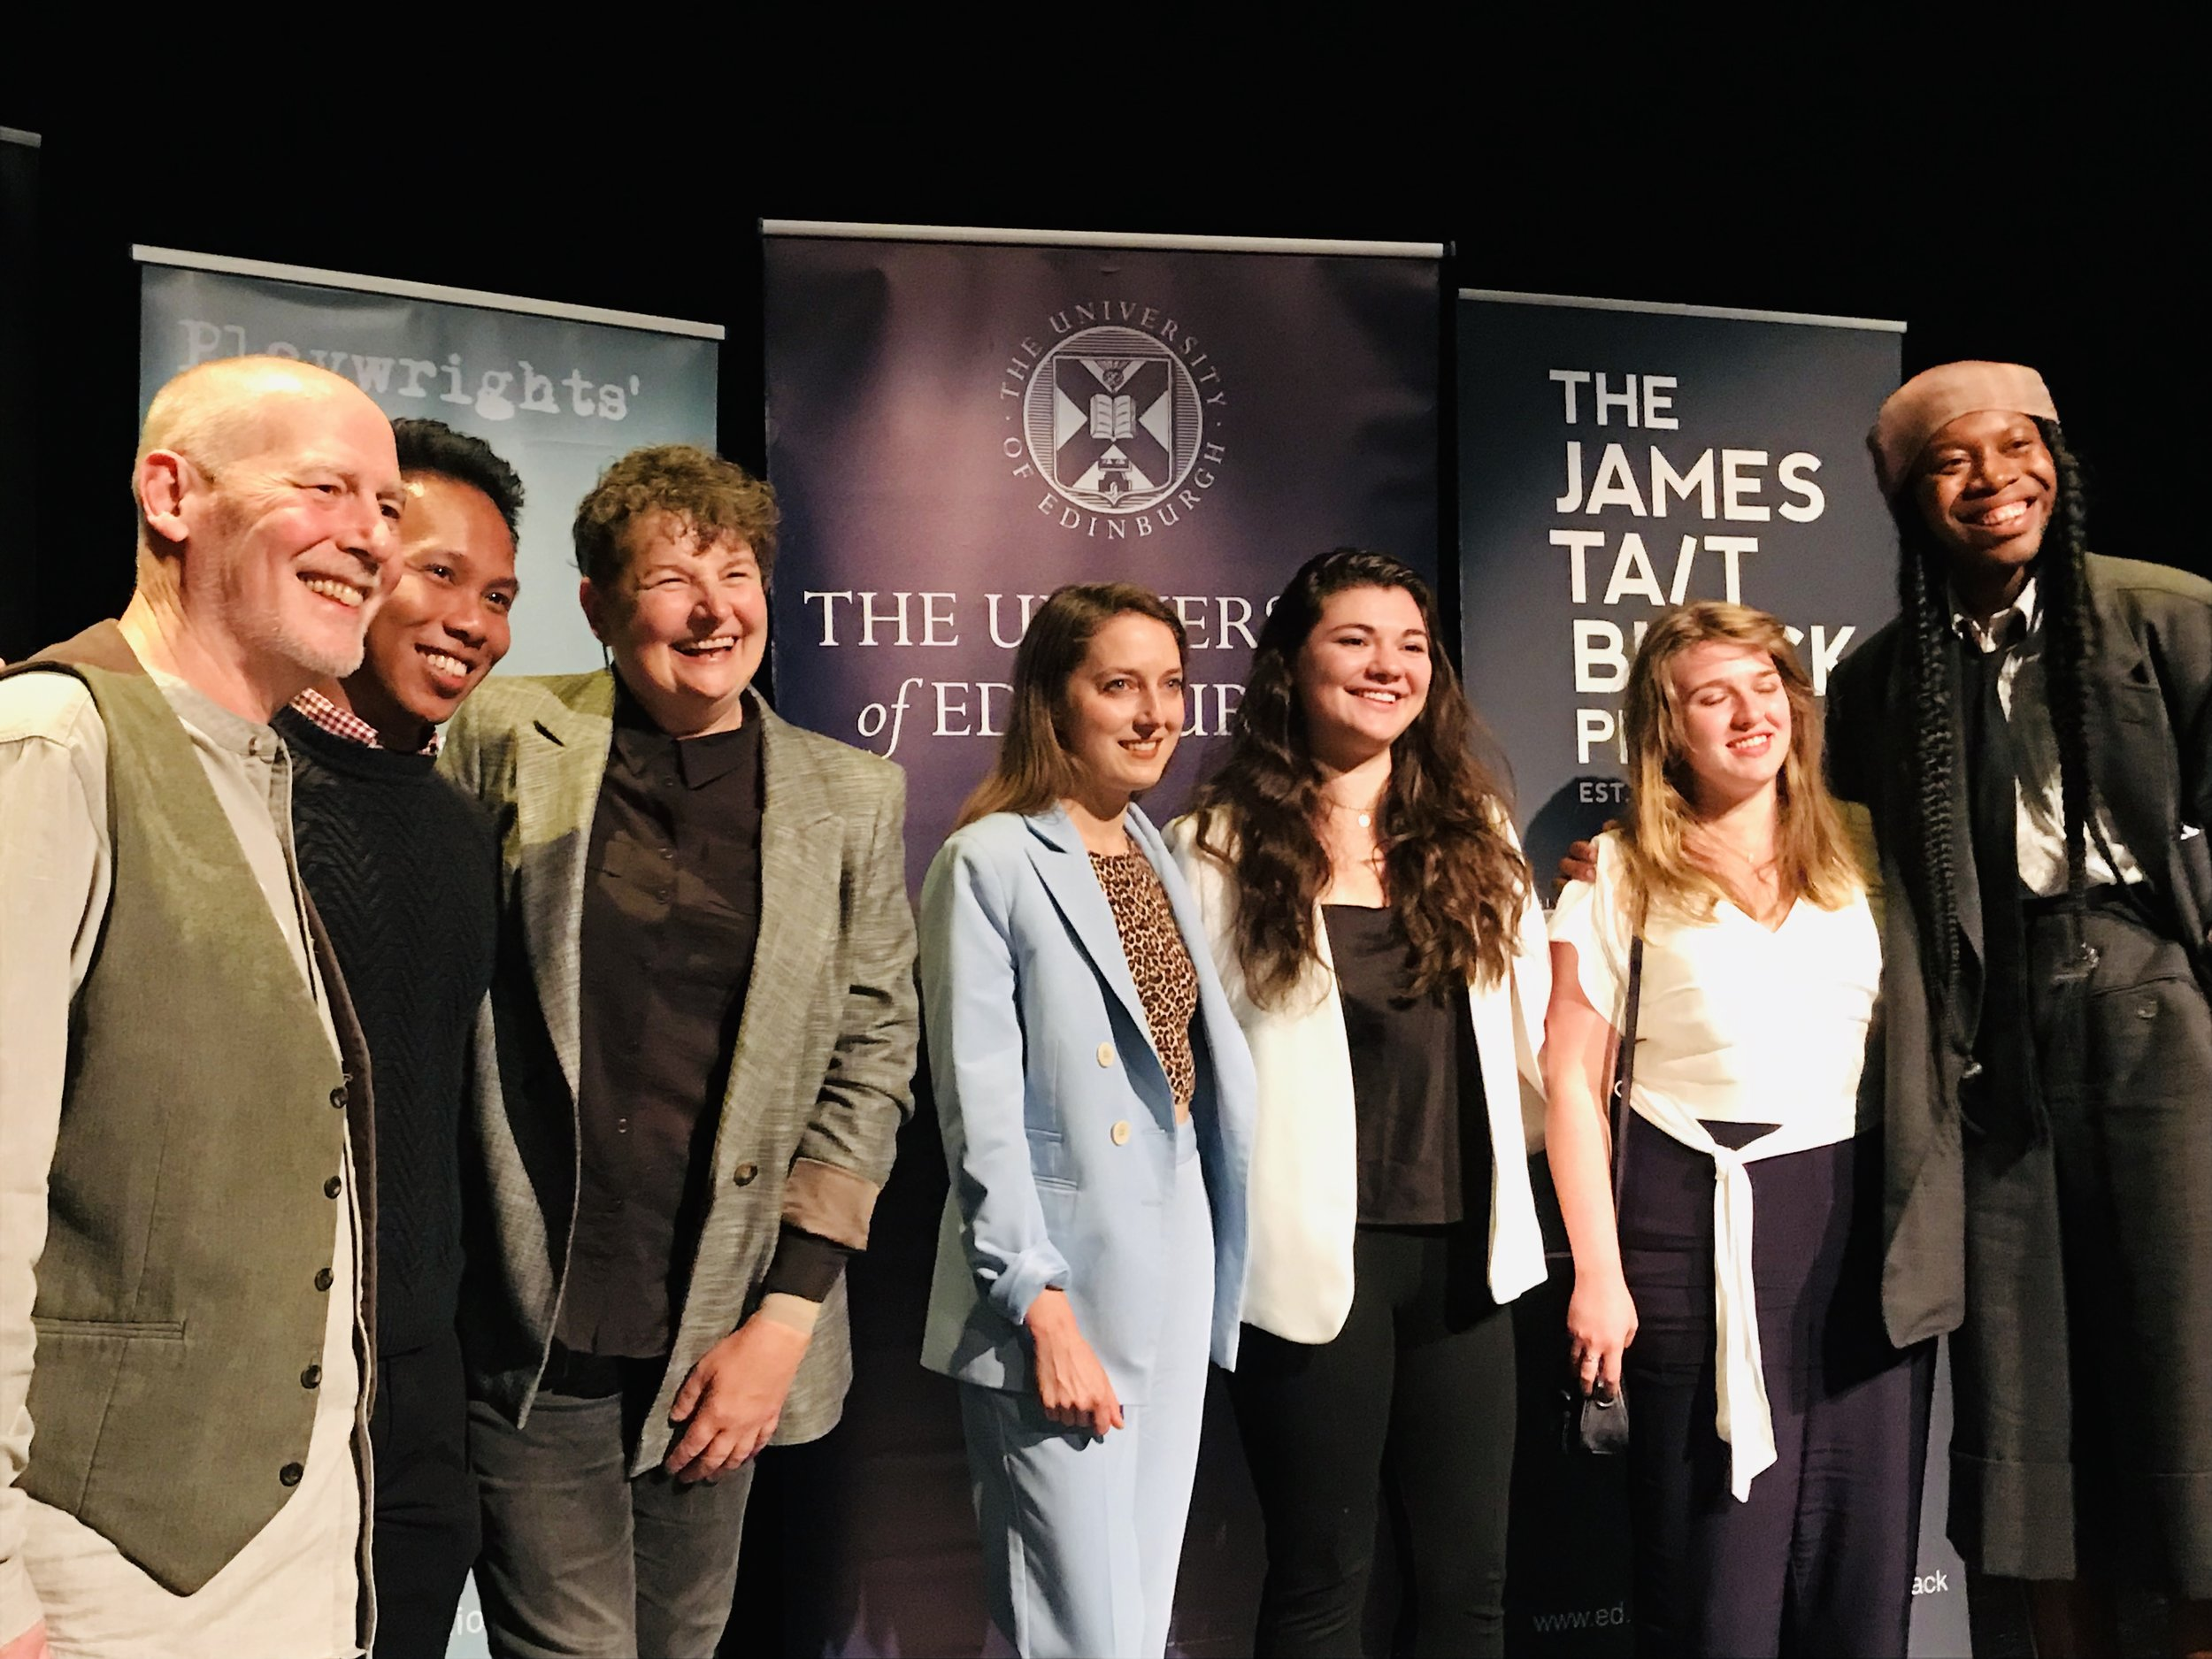 Phillip Zarrilli and Kaite O'Reilly, along with Clare Barron (middle/blue) and James O. Harris (far right) with some of the MA playwriting students from Edinburgh University at the ceremony on 19th August.